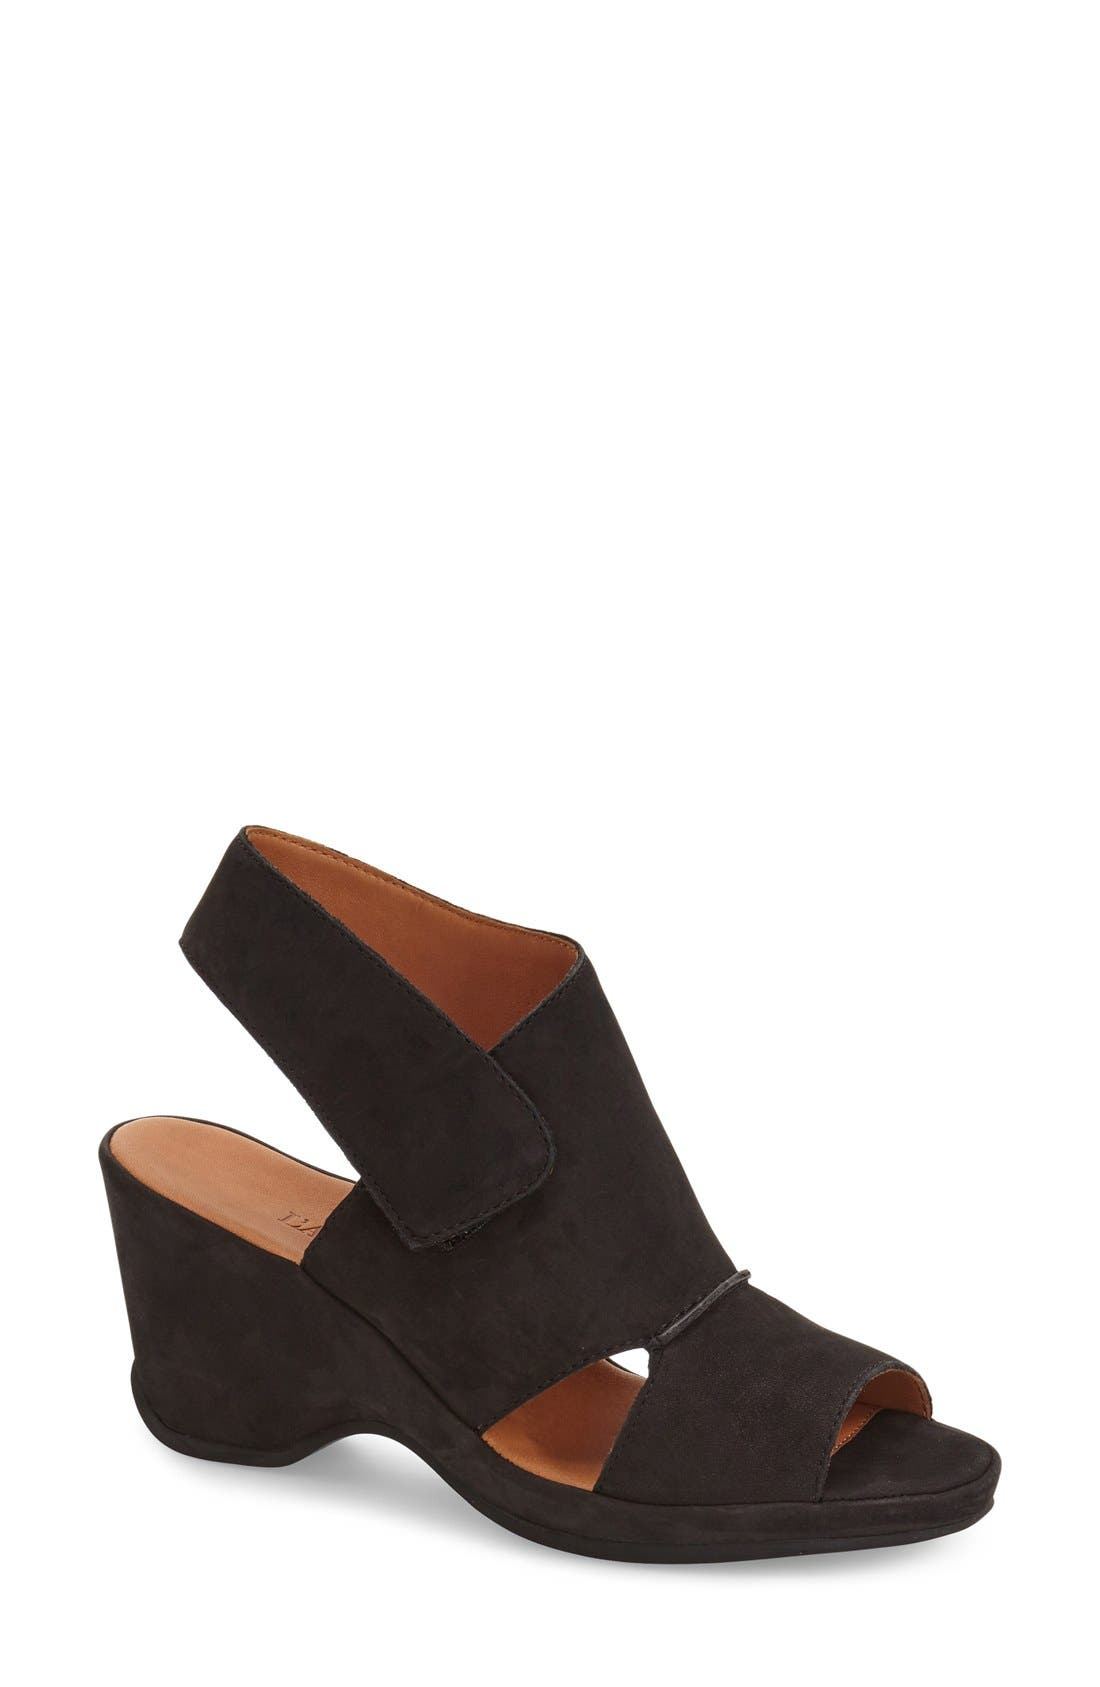 'Oswin' Peep Toe Demi Wedge Sandal,                         Main,                         color, Black Nubuck Leather